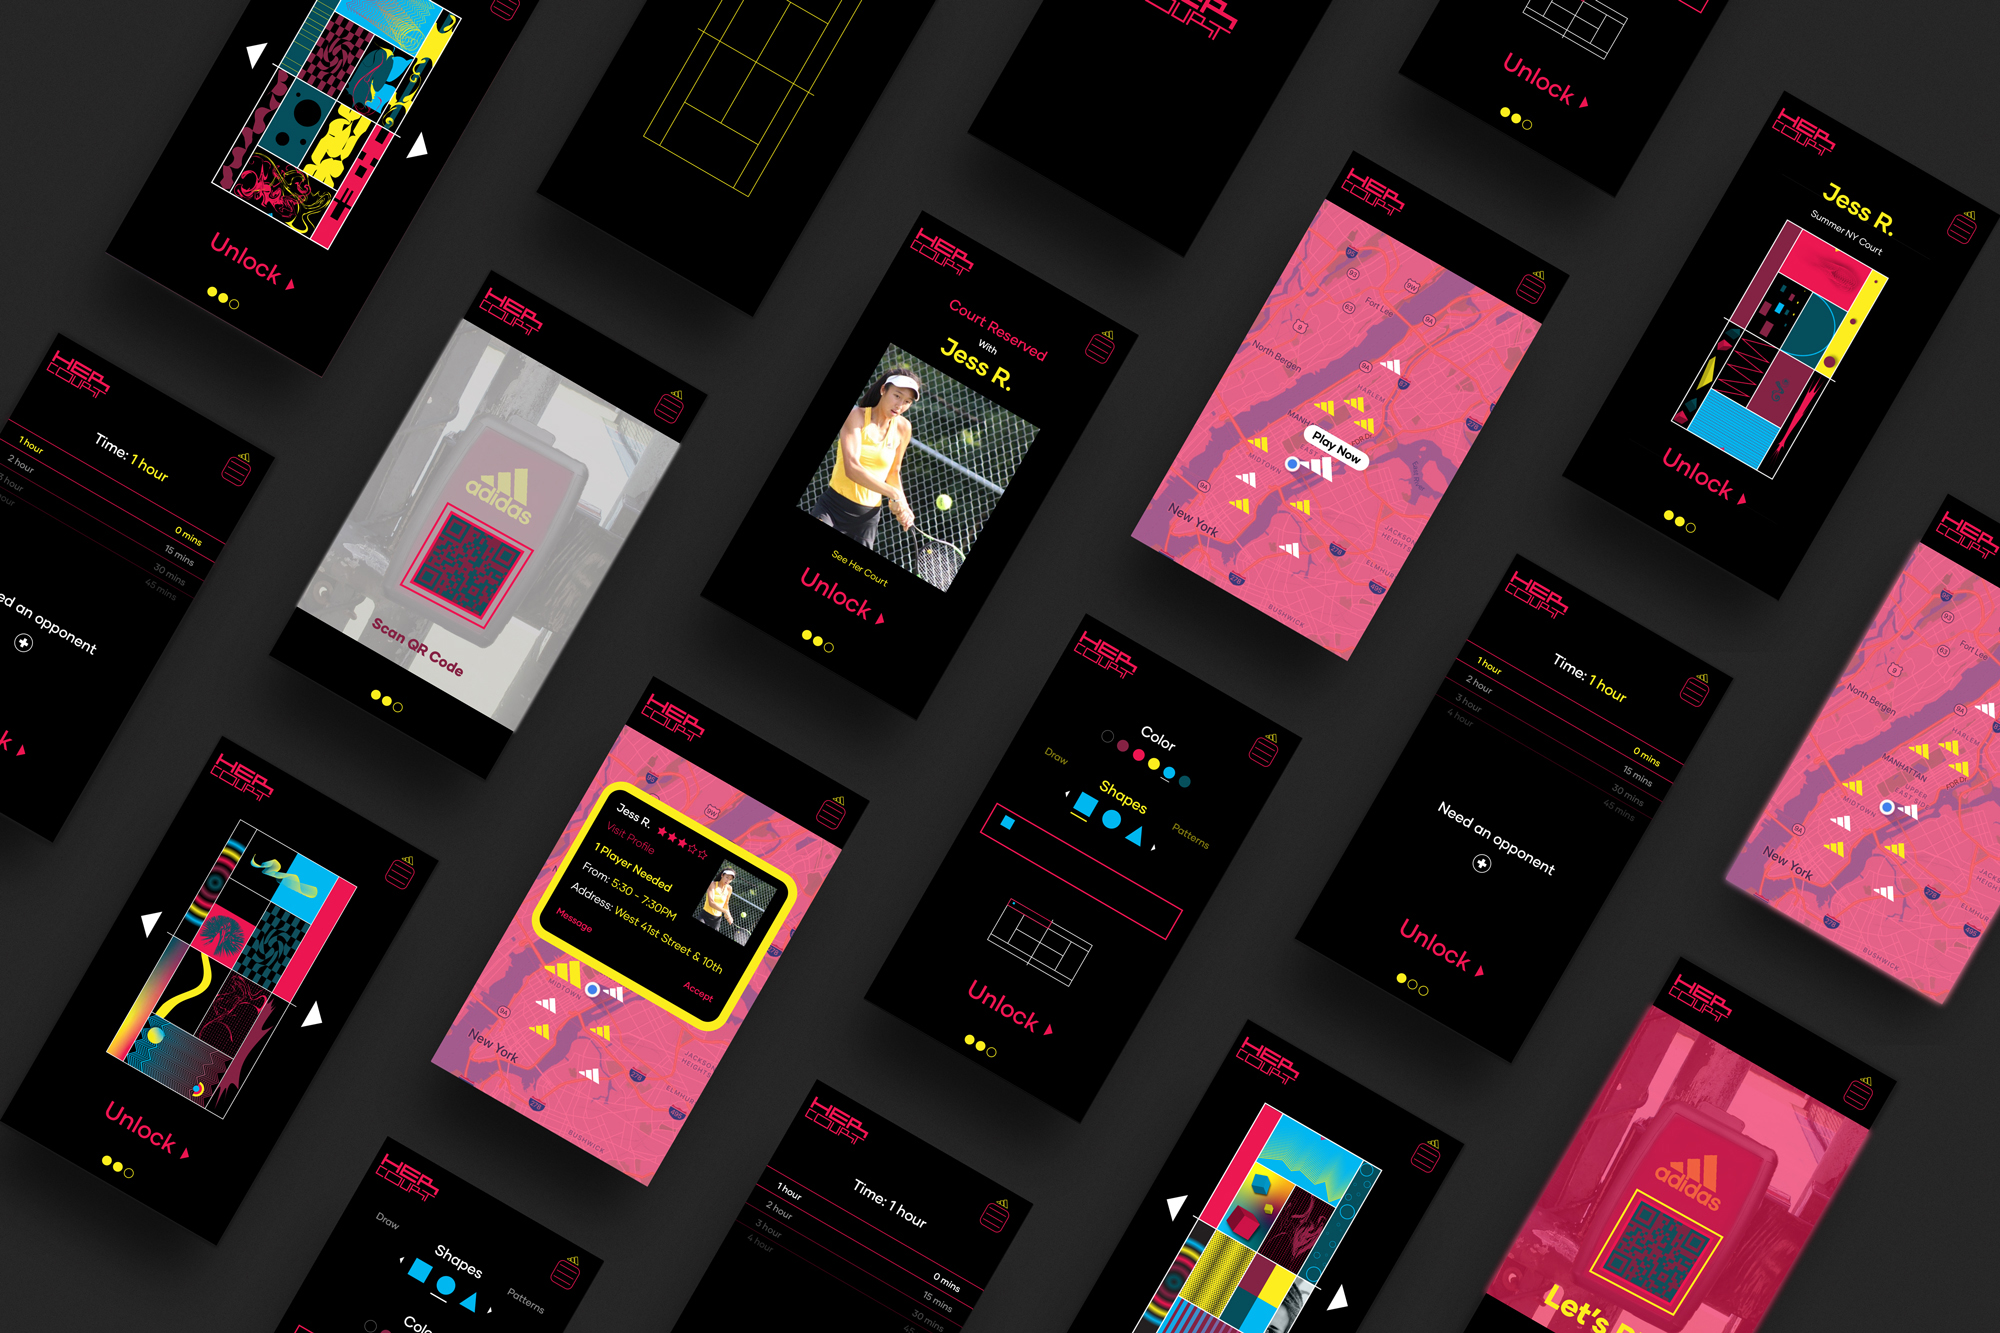 her-court-app-screens-1 copy